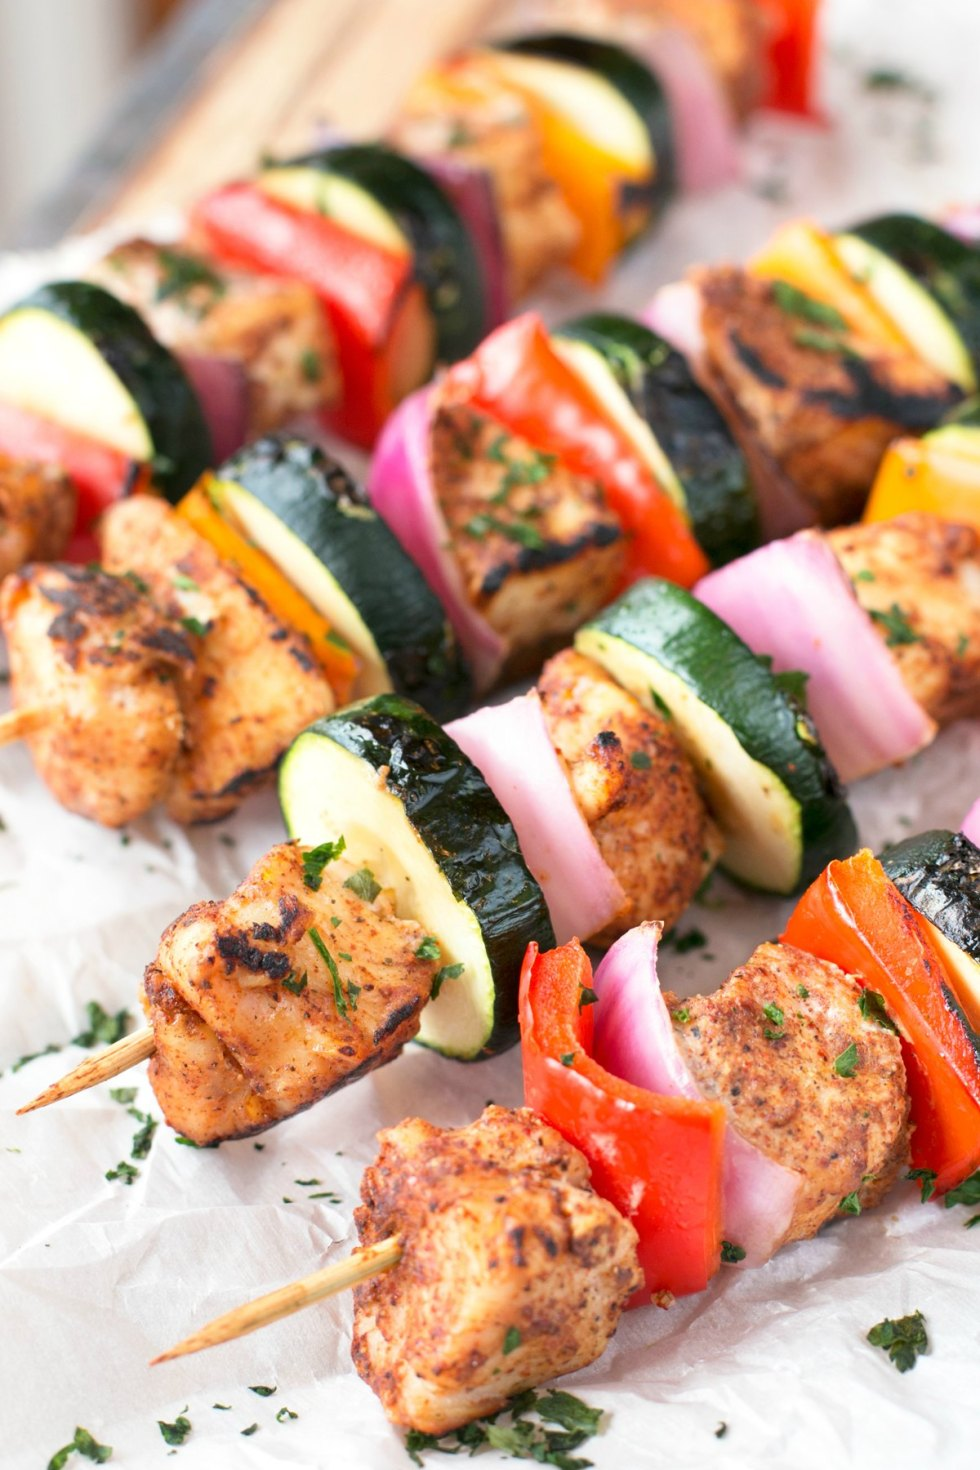 Chicken skewers with zucchini pepper and onion on a baking sheet